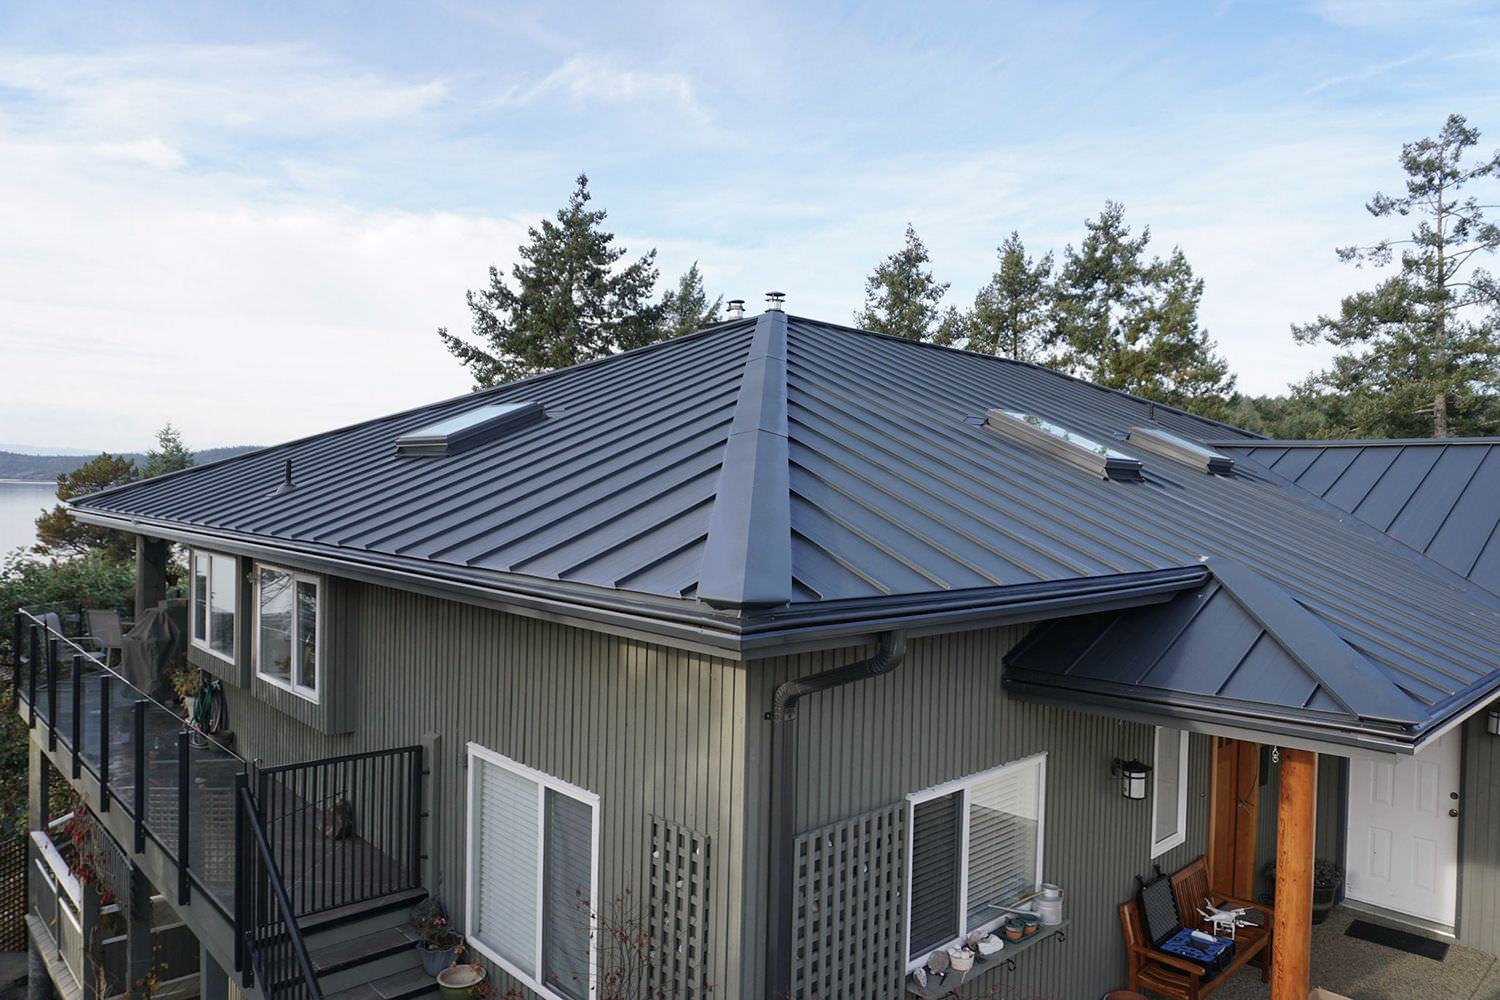 ... Interlock Standing Seam Roof Hawaii